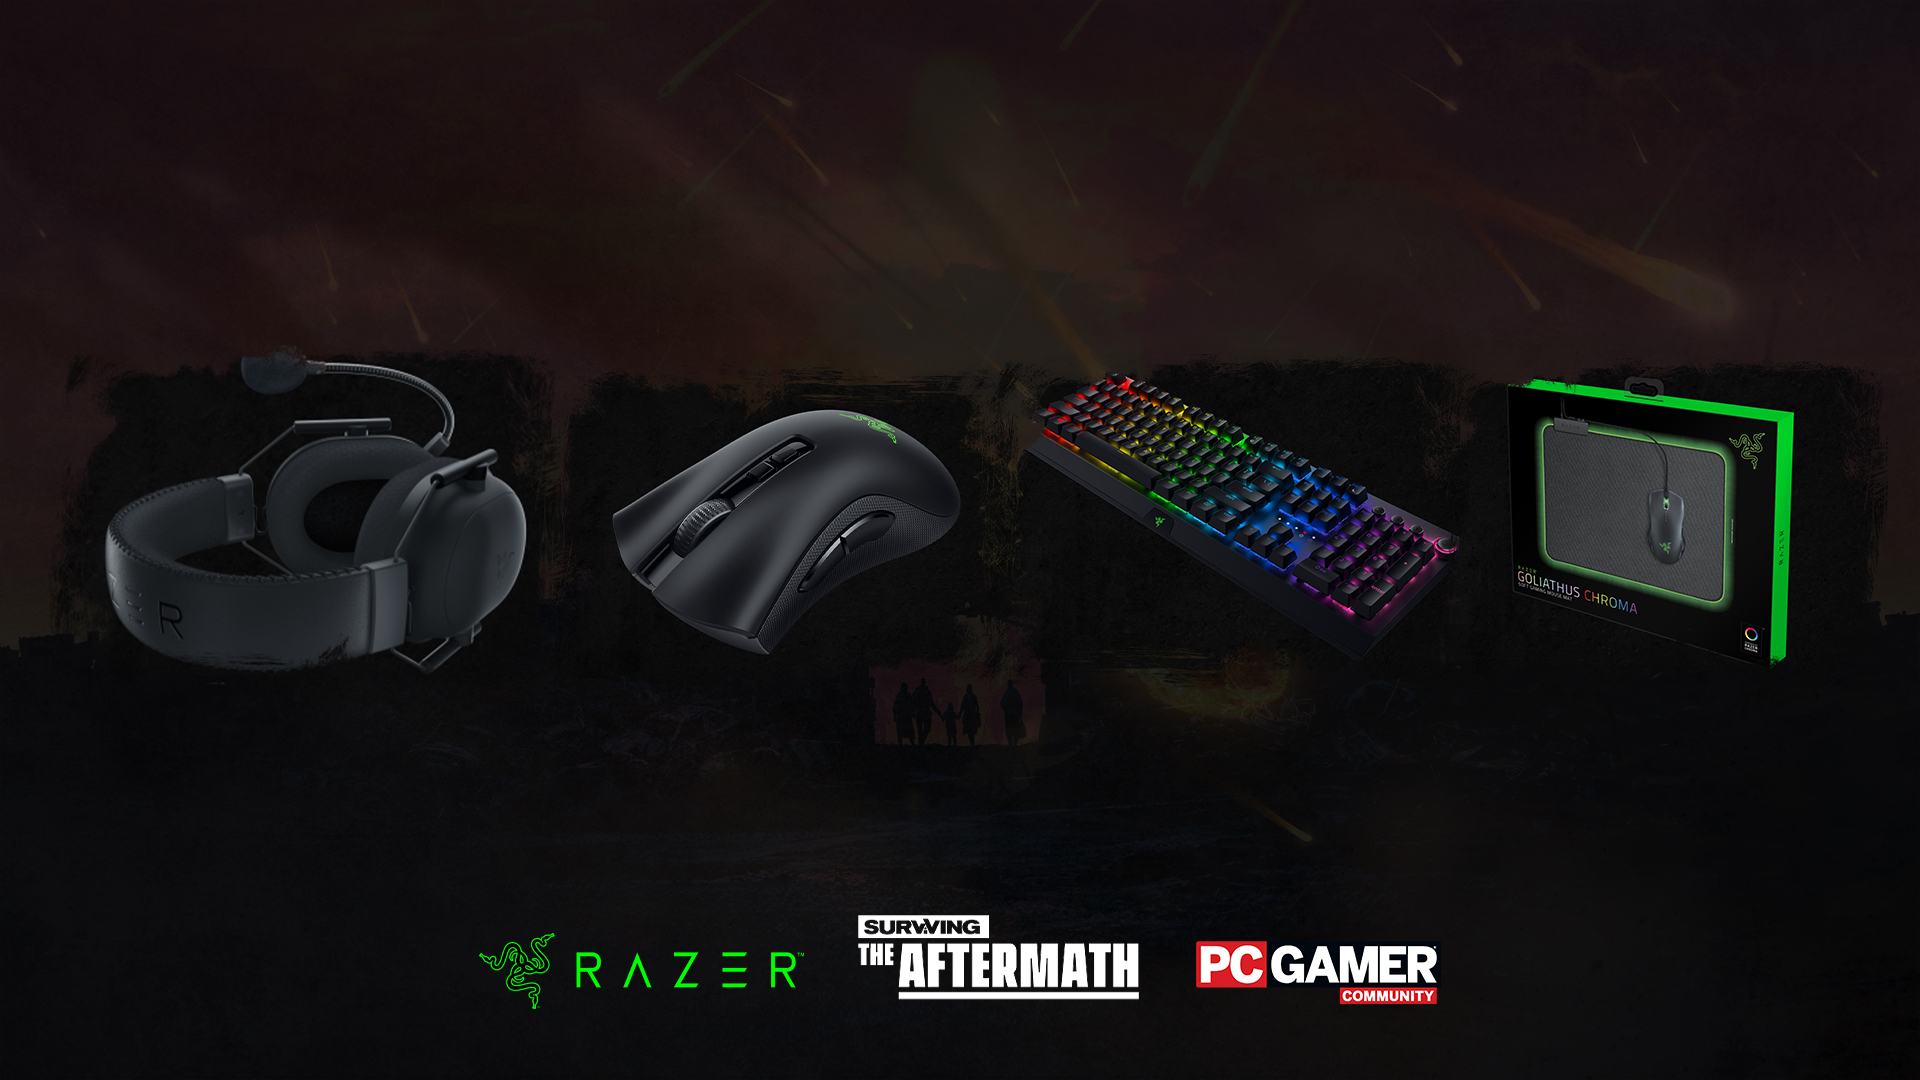 Giveaway: win a Razer prize pack from Iceflake & Paradox on the PC Gamer forums